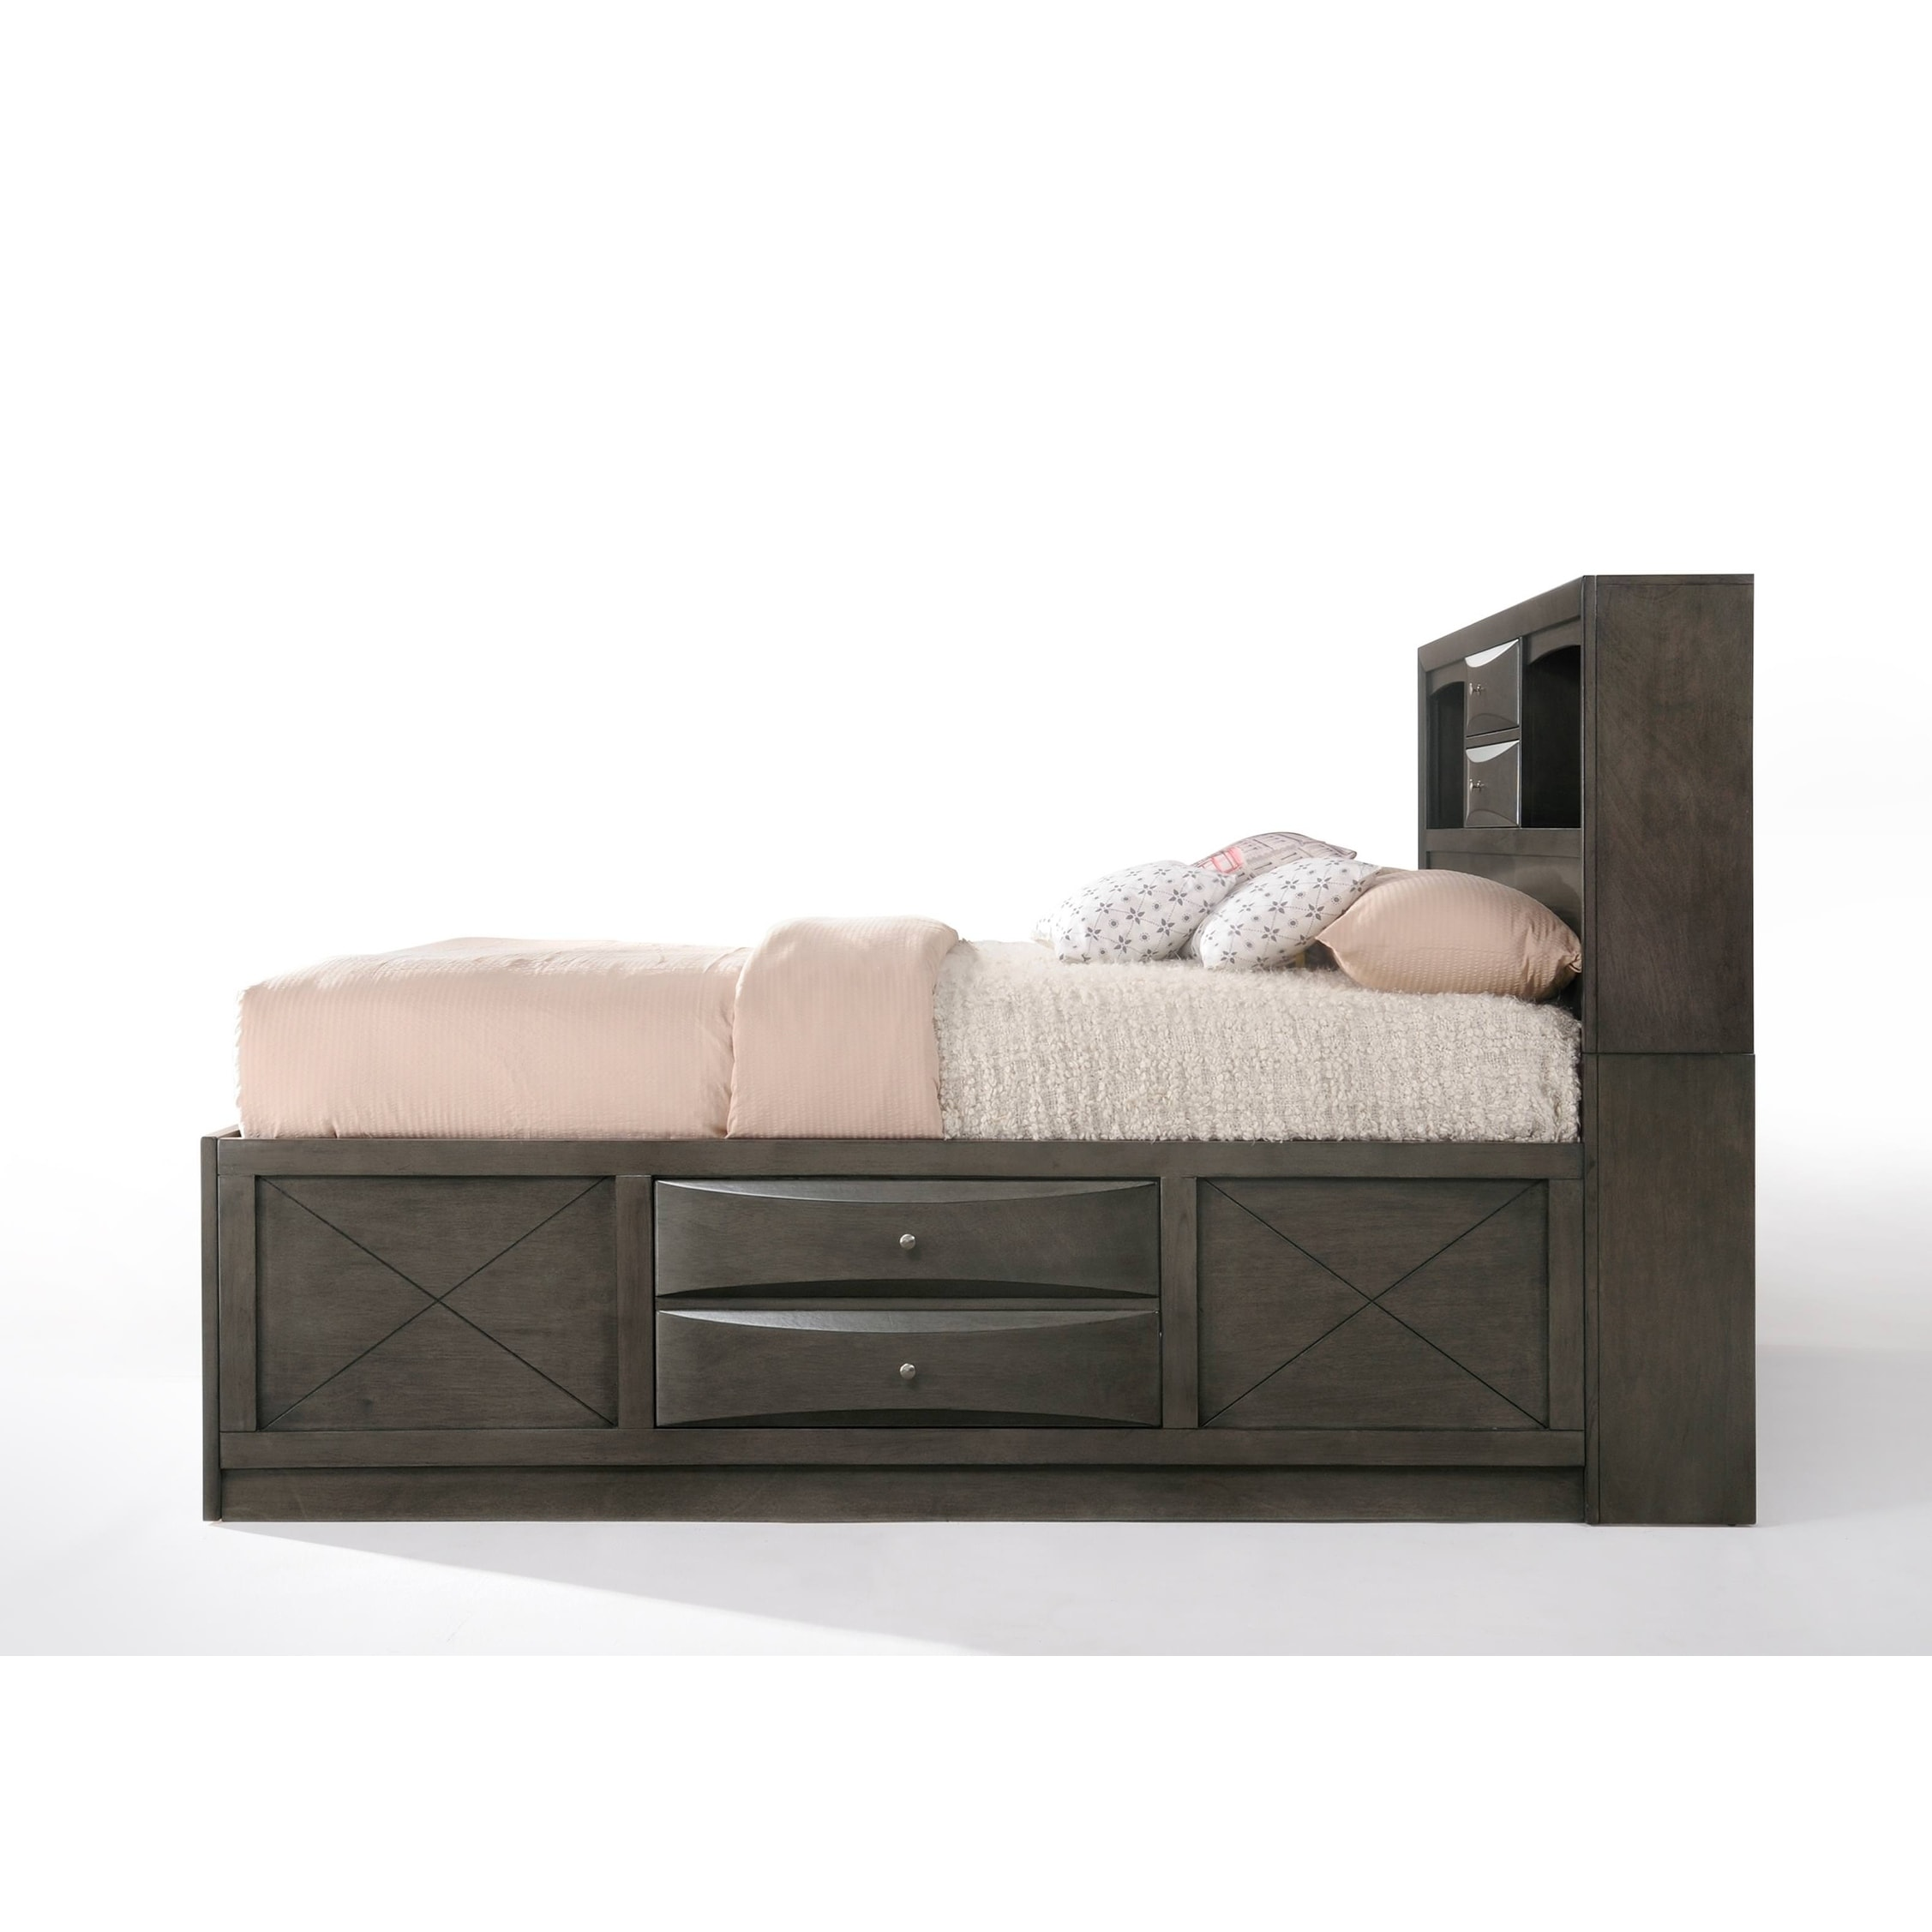 8c7cbd17581f Shop ACME Ireland Storage Eastern King Bed in Gray Oak - Free Shipping  Today - Overstock - 19297419